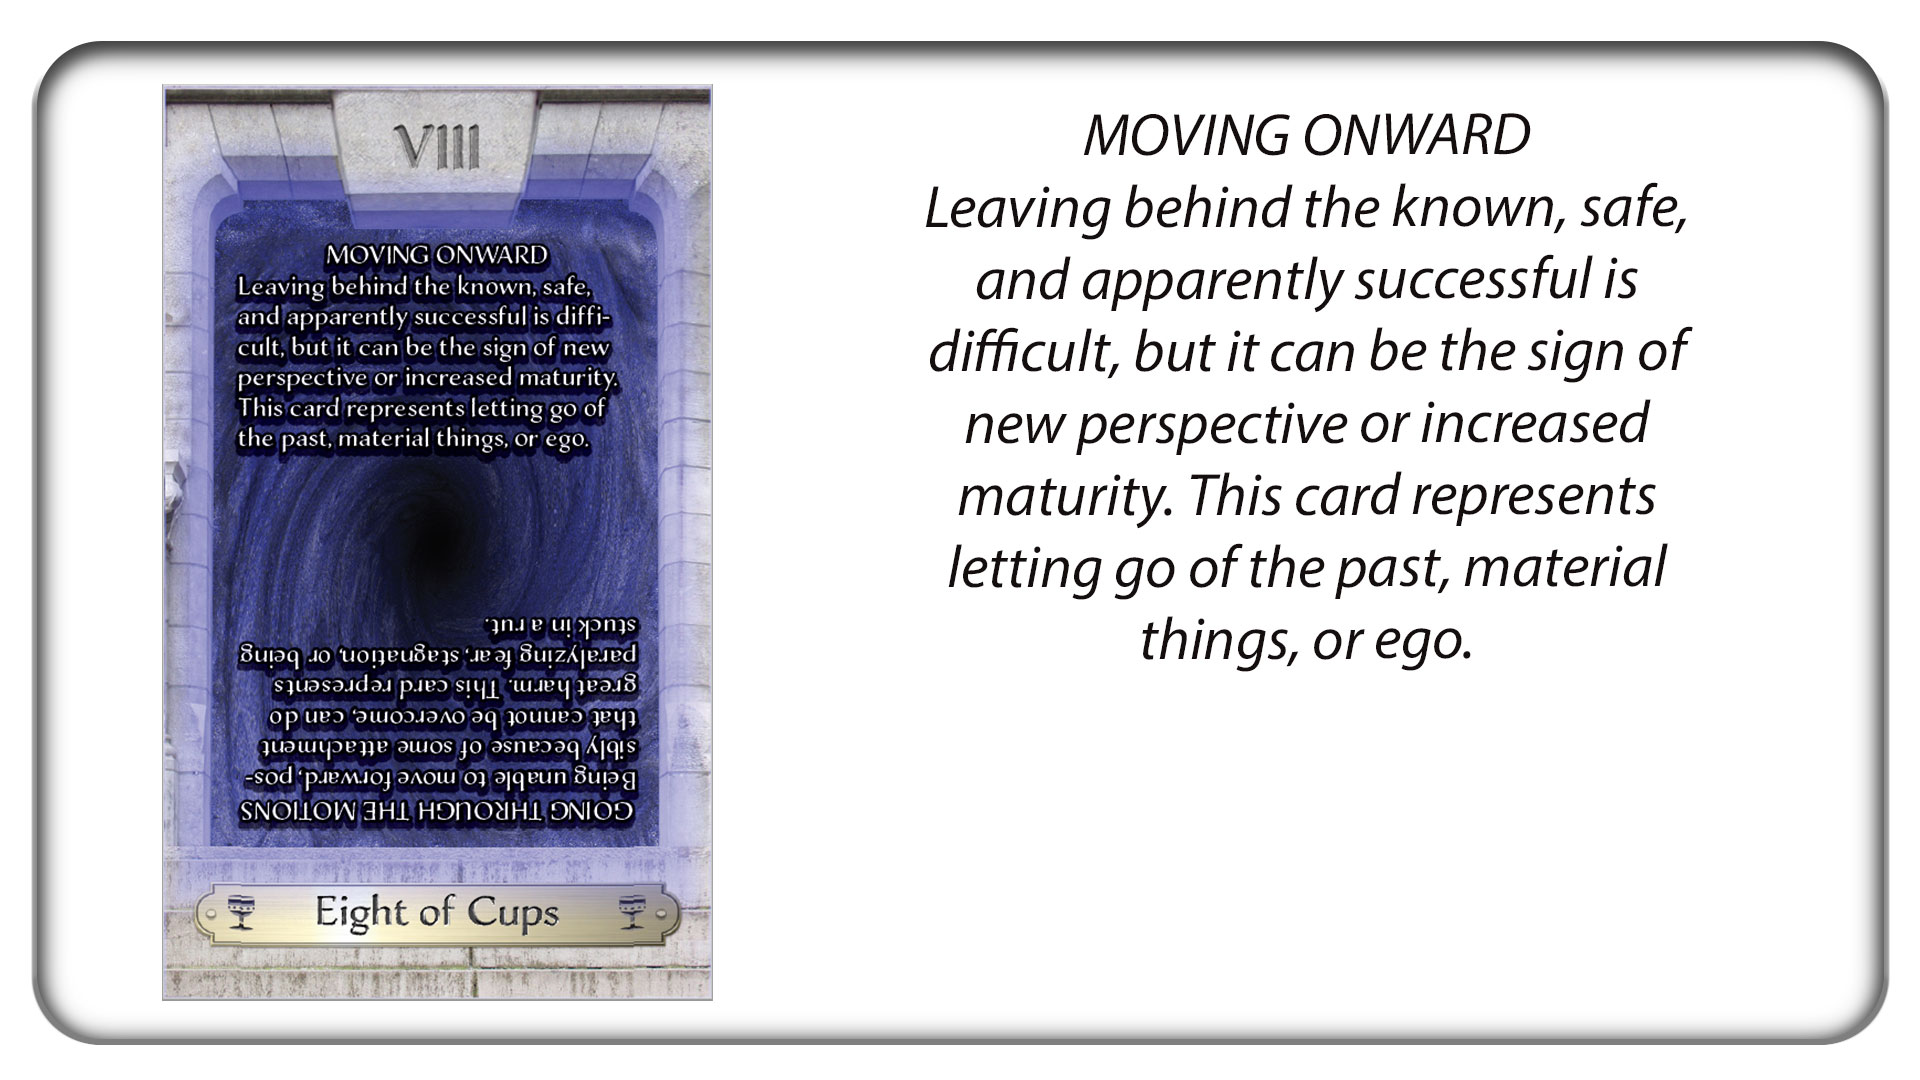 The Eight of Cups: Moving Onward